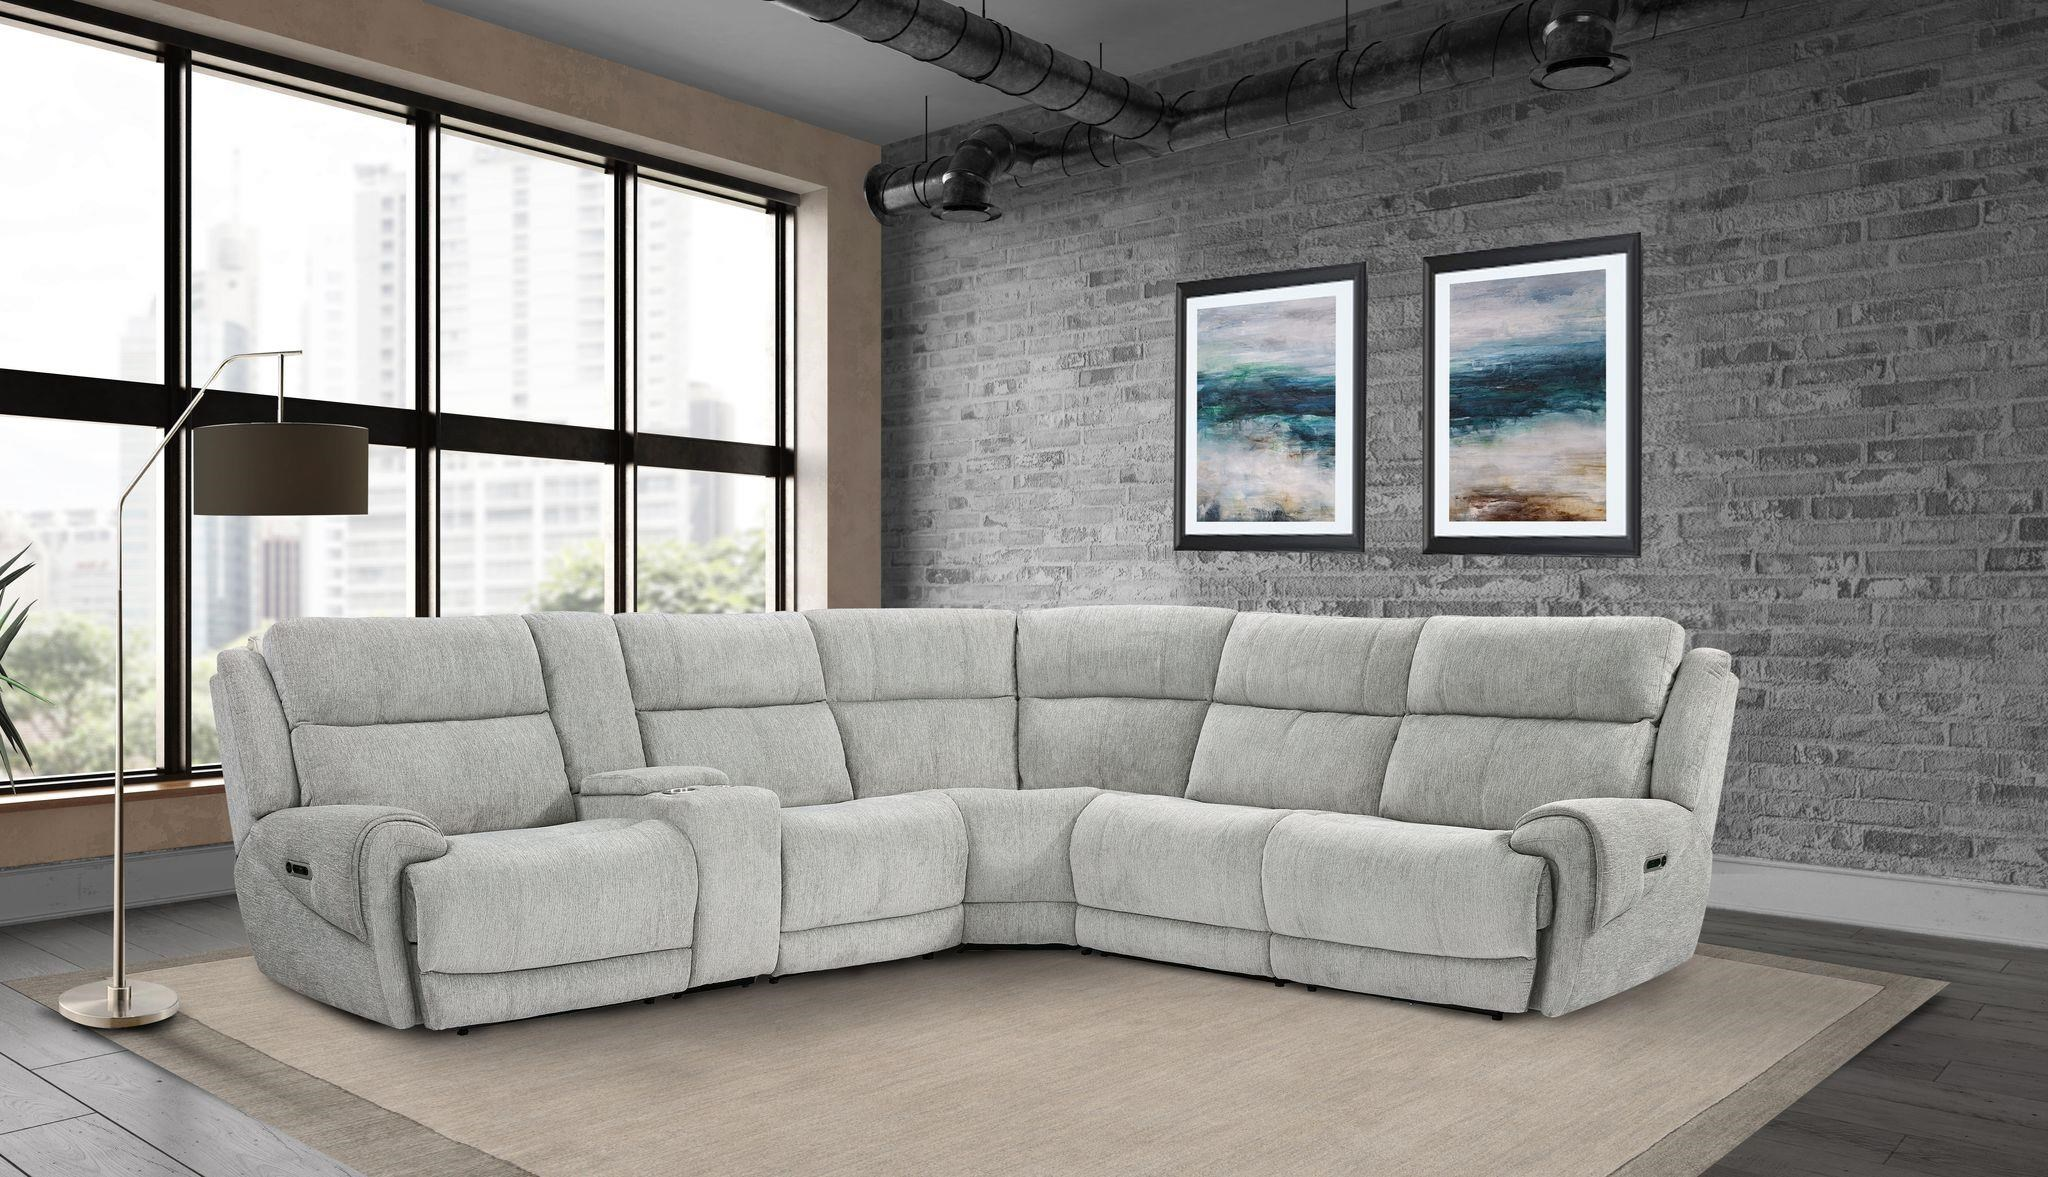 Spencer 6-Piece Power Reclining Sectional Sofa by Parker House at Beck's Furniture